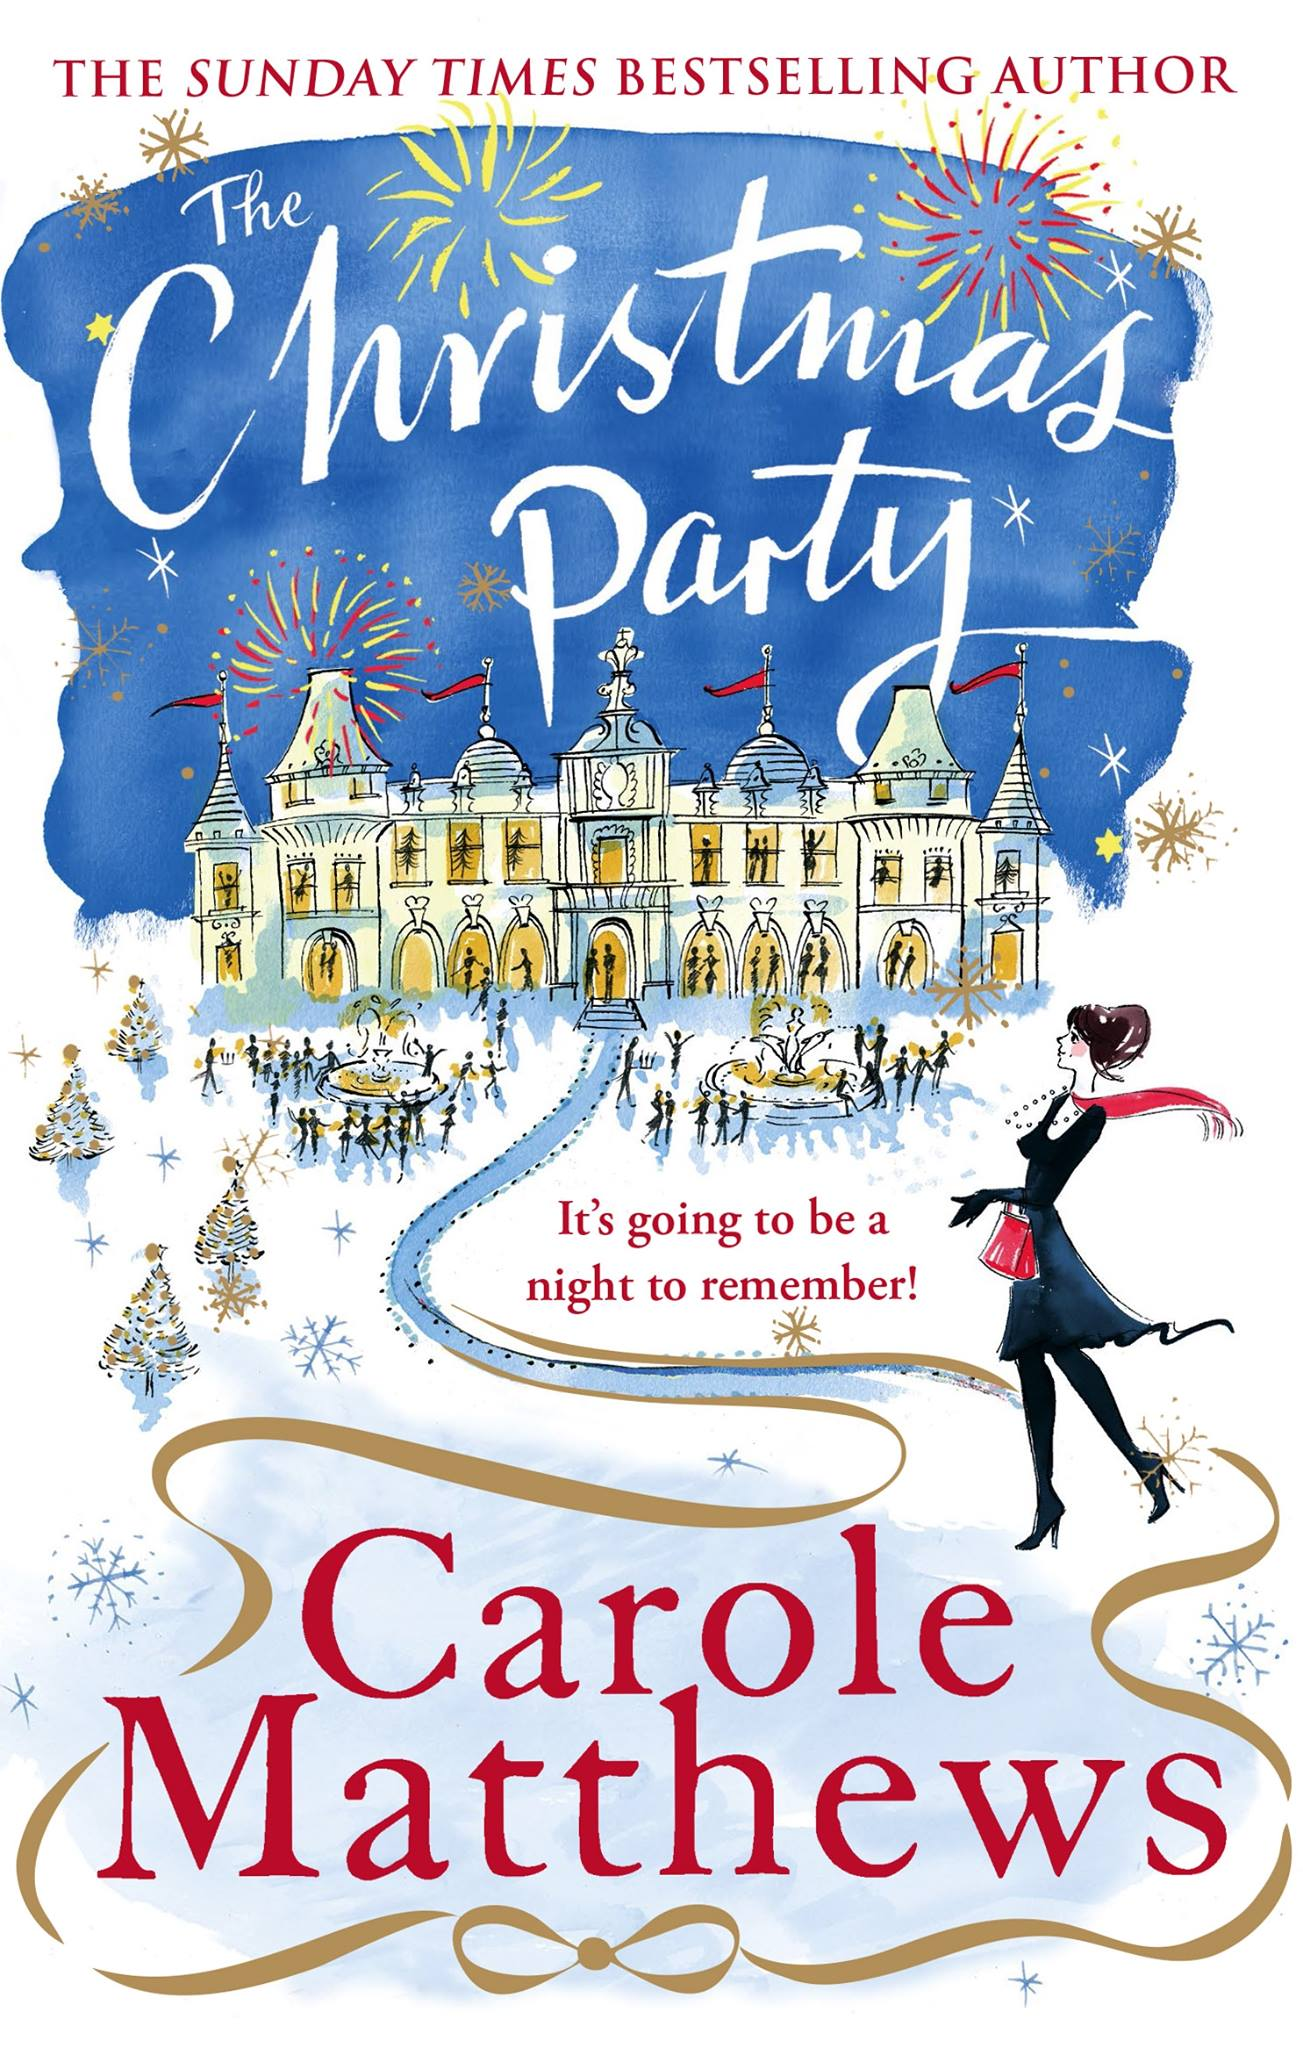 The Christmas Party, a festive book by Carole Matthews.